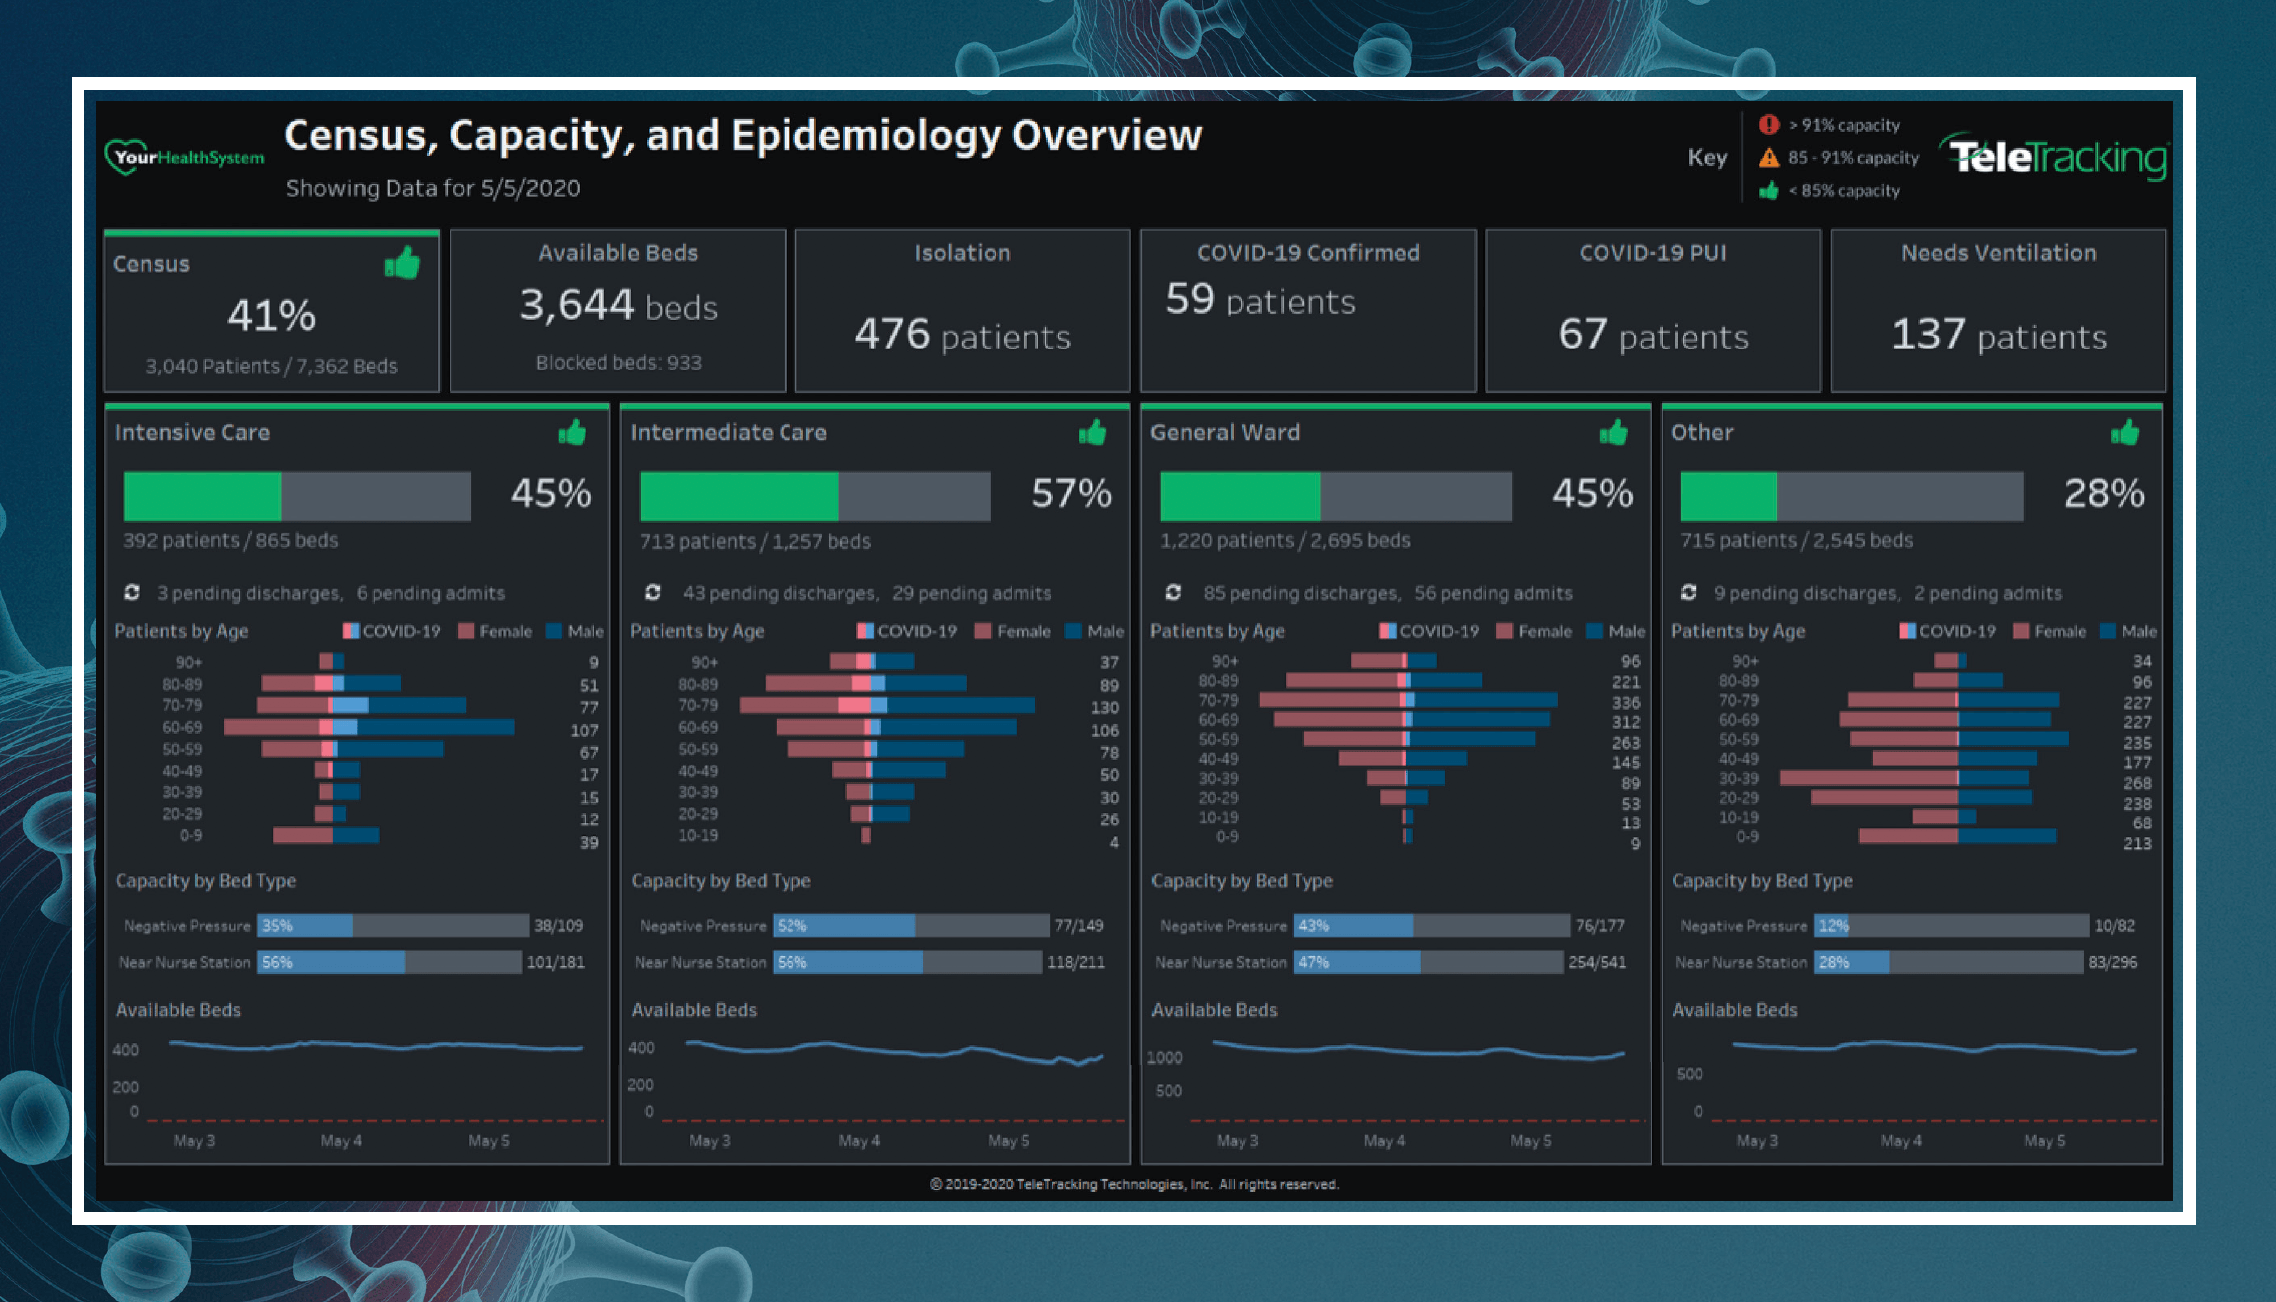 Enterprise COVID-19 capacity, census and epidemiology dashboard equips health systems with critical information to prepare for and respond to patient surges.